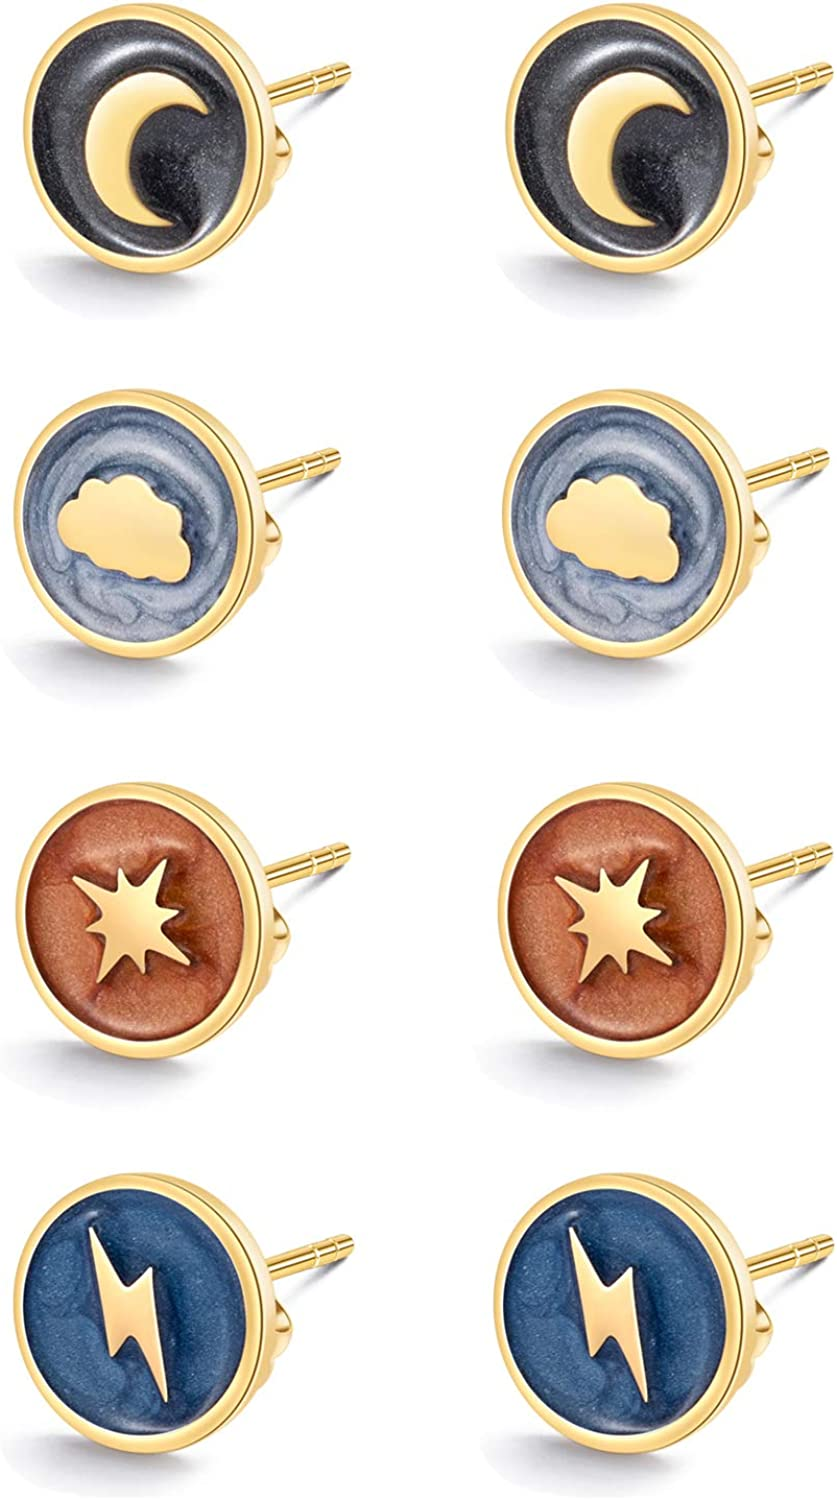 14K Gold Plated Stainless Steel ,Coloful Resin, Dainty Small Earrings for Women(4 Pairs/Pack) Minimalist Design Moon,North Star,Cloud,Lighting.Daily Wear Meaningful Gifts,Matching Clothes and Makeup…